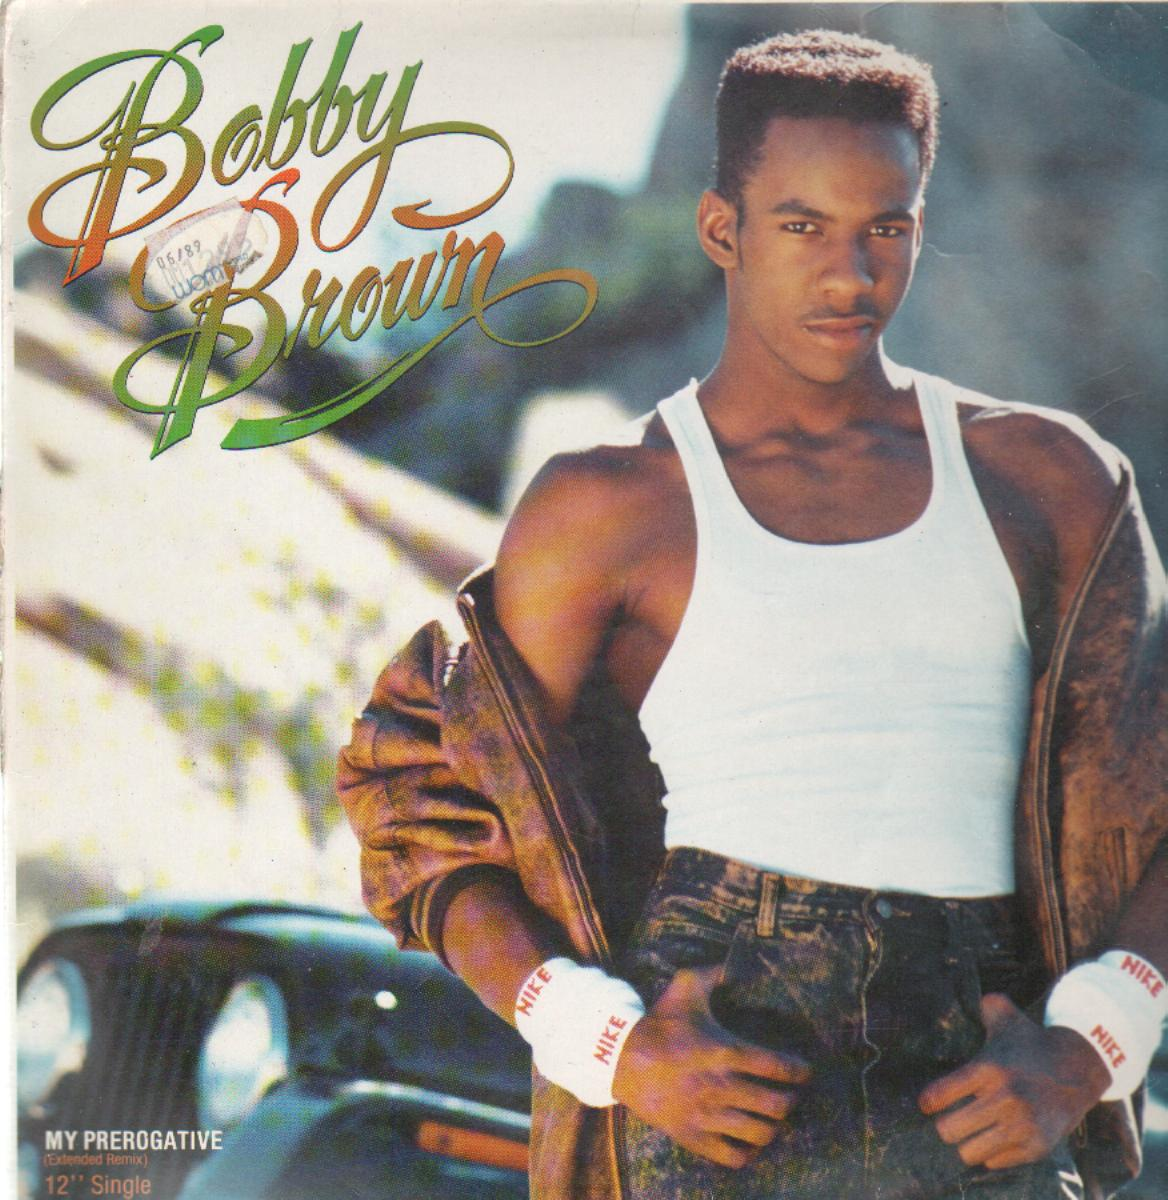 Somehow I don't believe Bobby Brown was ever a pescetarian..